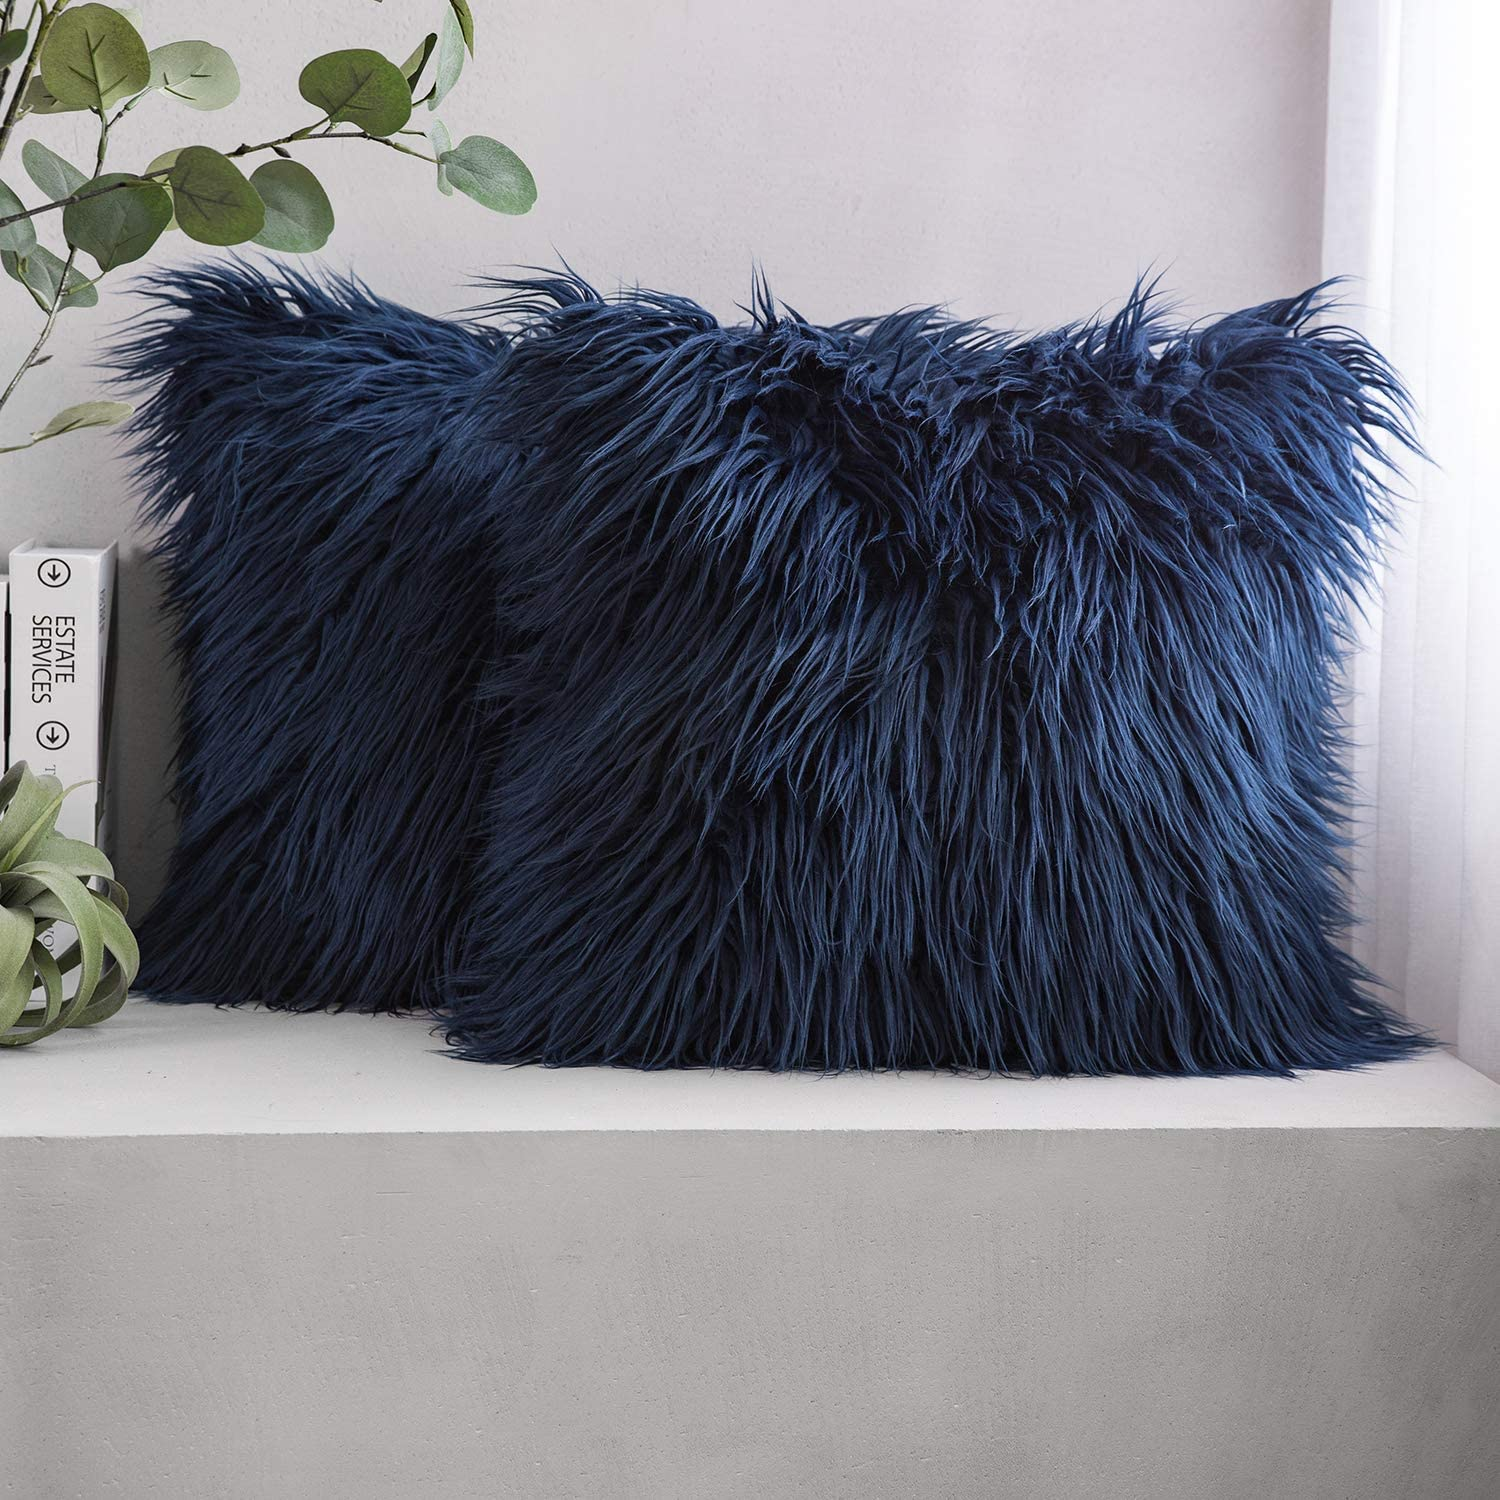 Phantoscope Pack of 2 Luxury Series Throw Pillow Covers Faux Fur Mongolian Style Plush Cushion Case for Couch Bed and Chair, Navy Blue 22 x 22 inches 55 x 55 cm